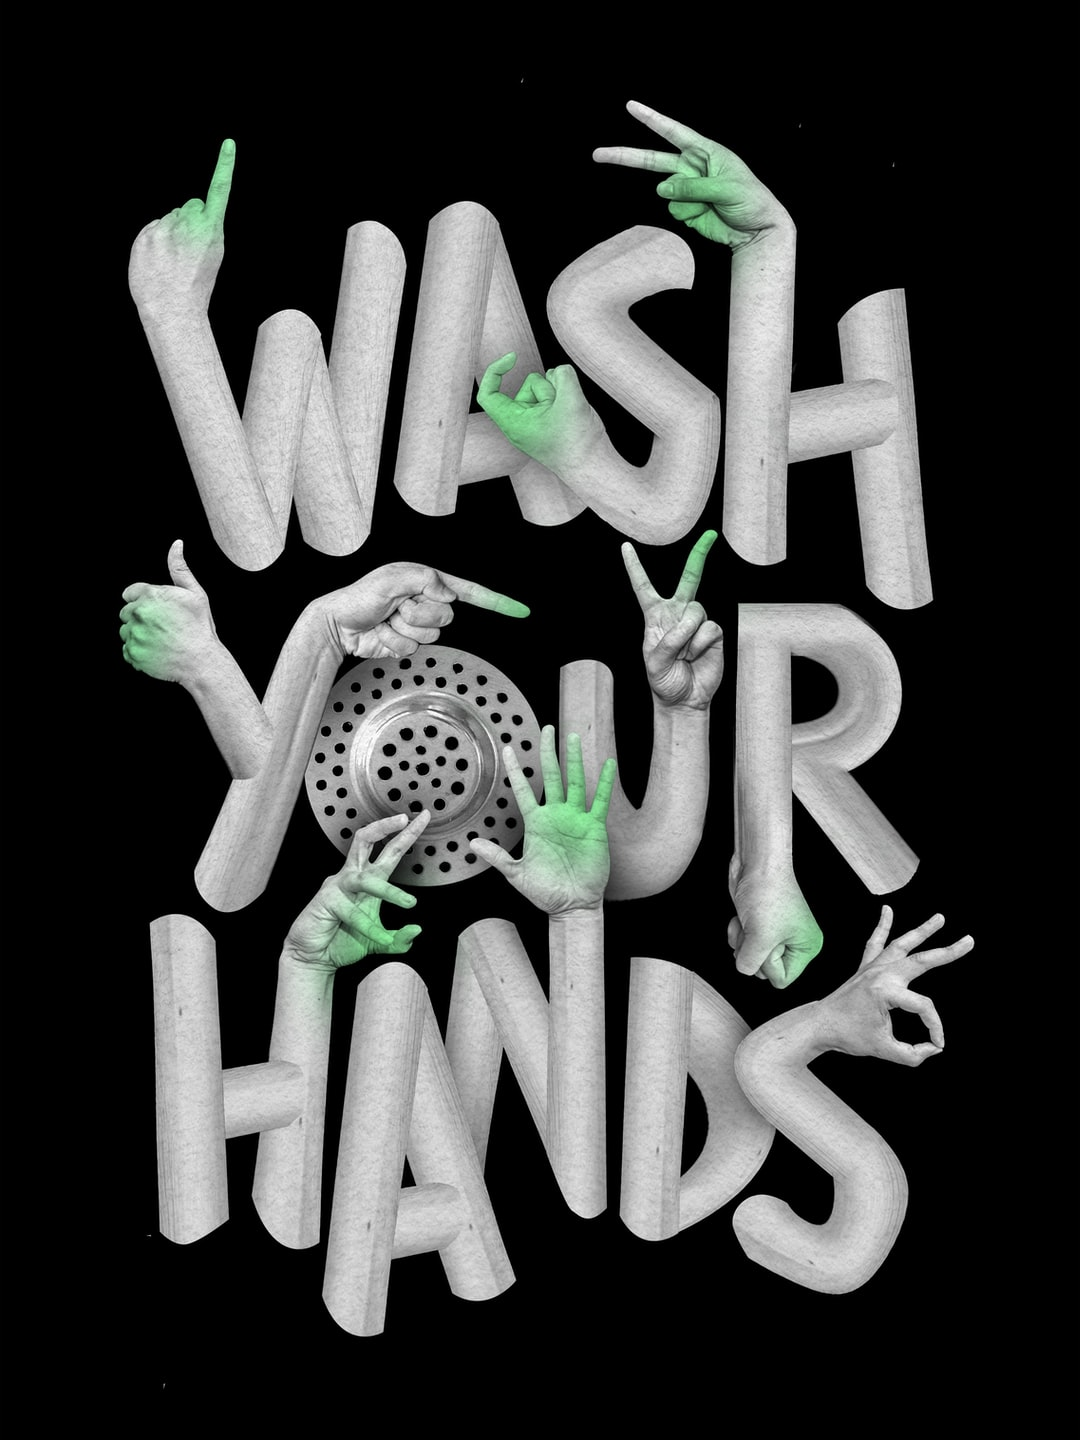 Wash your hands. Image created by Rok Mar. Submitted for United Nations Global Call Out To Creatives - help stop the spread of COVID-19.